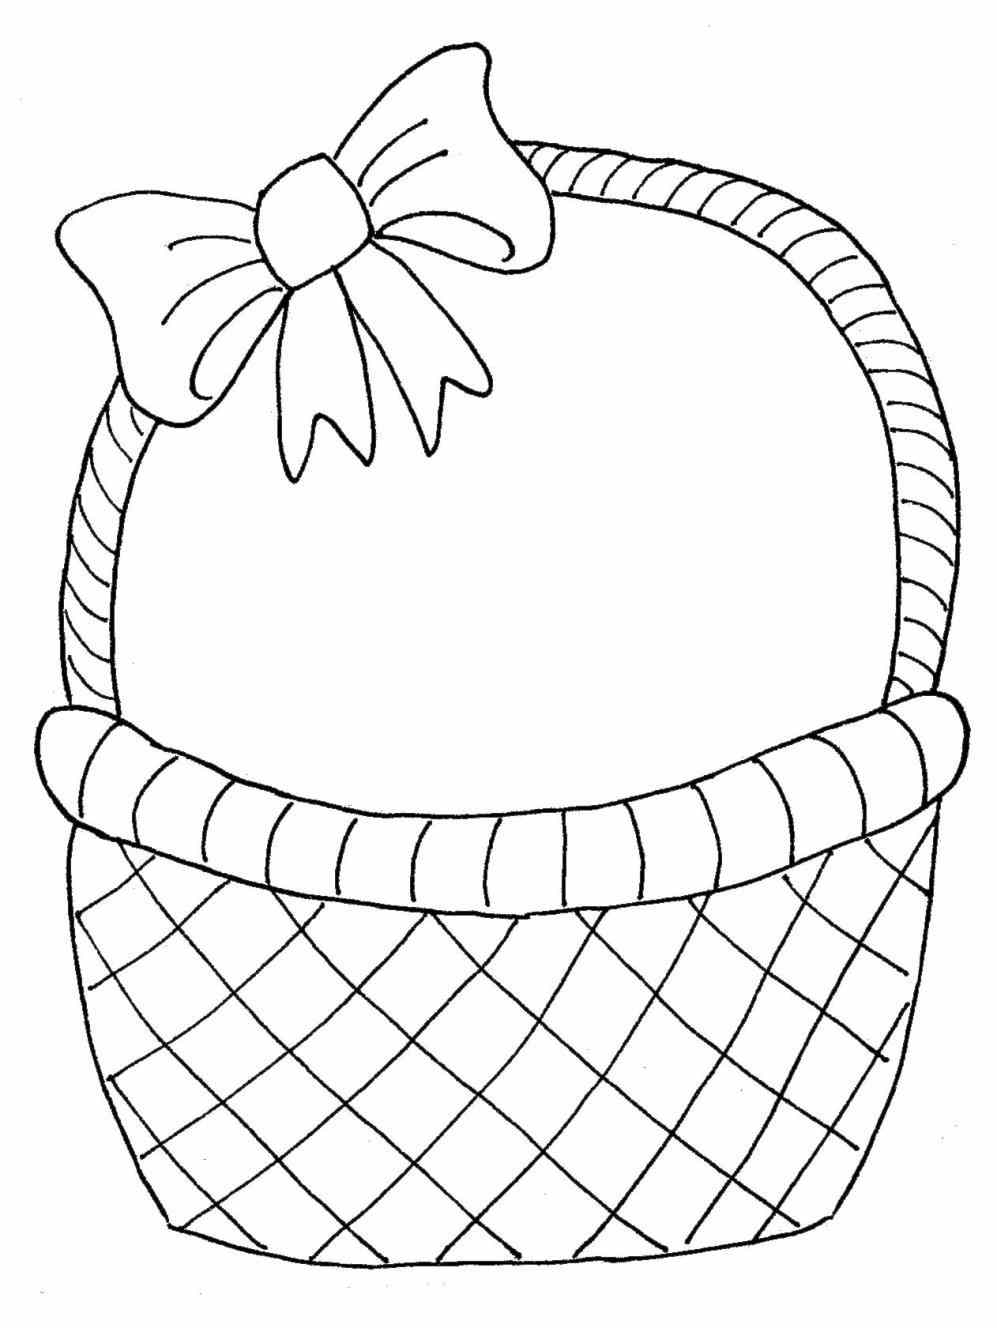 Picture of basket black and white clipart picture royalty free stock Basket black and white clipart 4 » Clipart Station picture royalty free stock